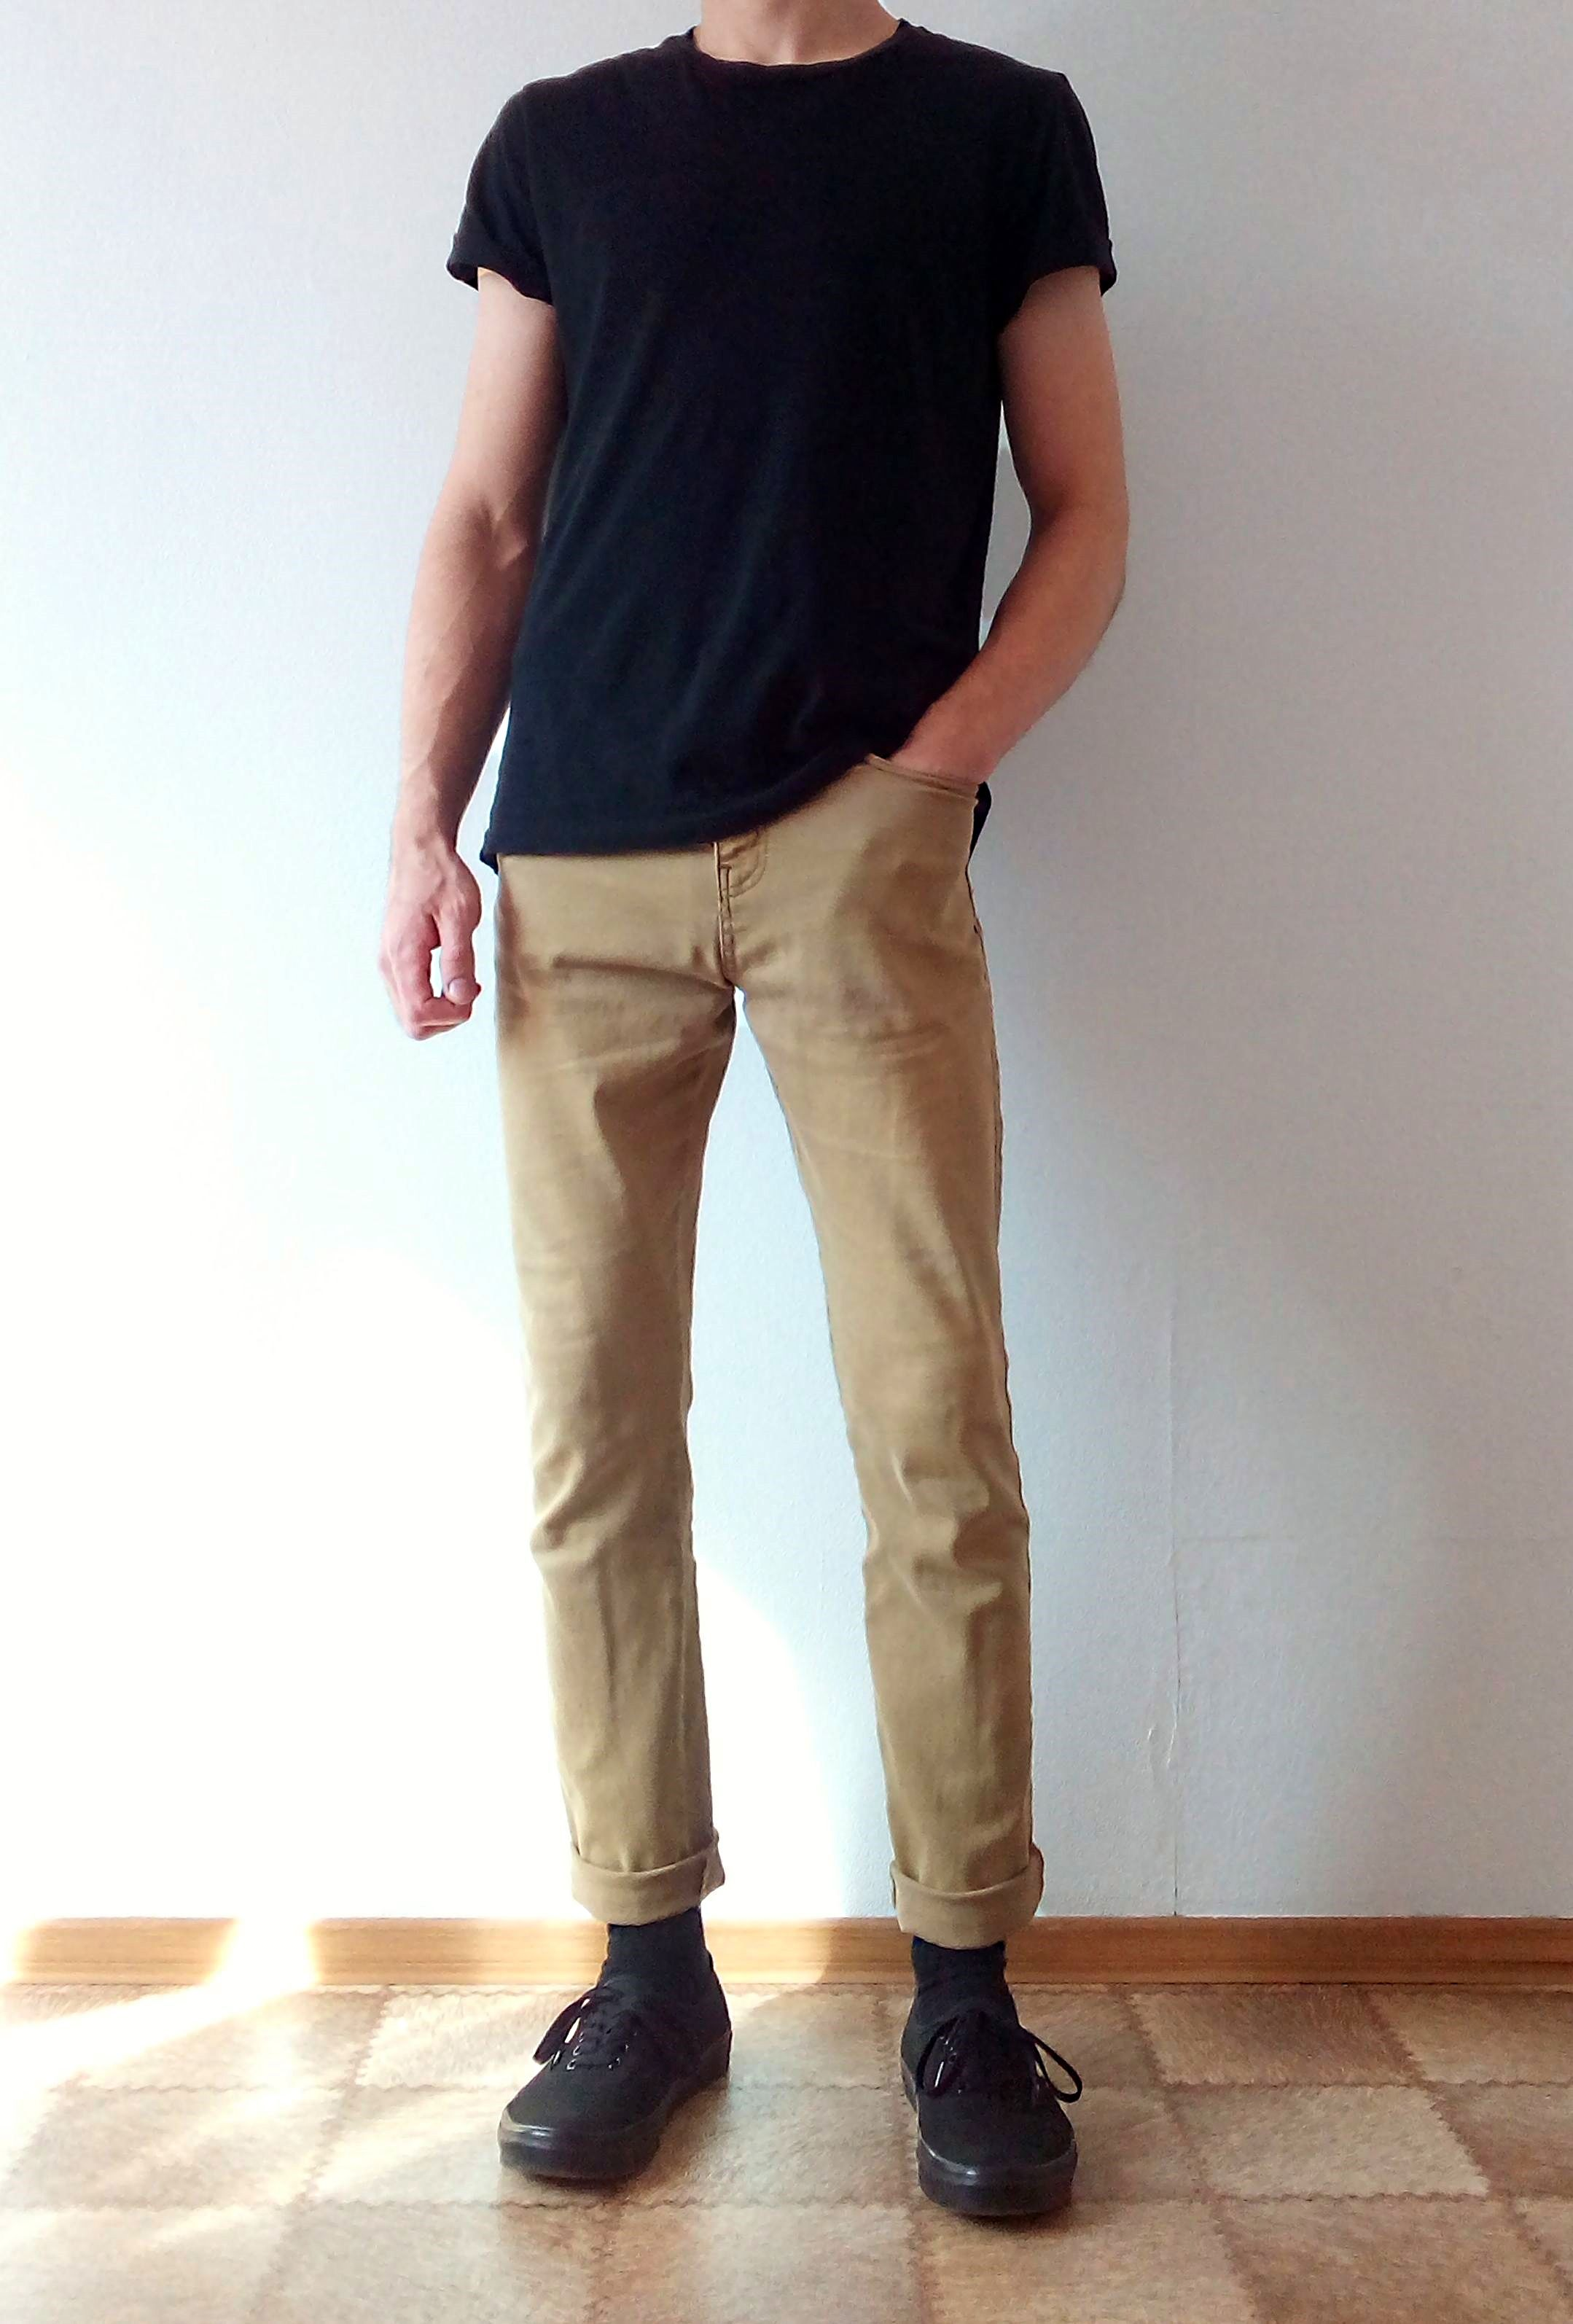 Sneakers outfit men, Mens casual outfits